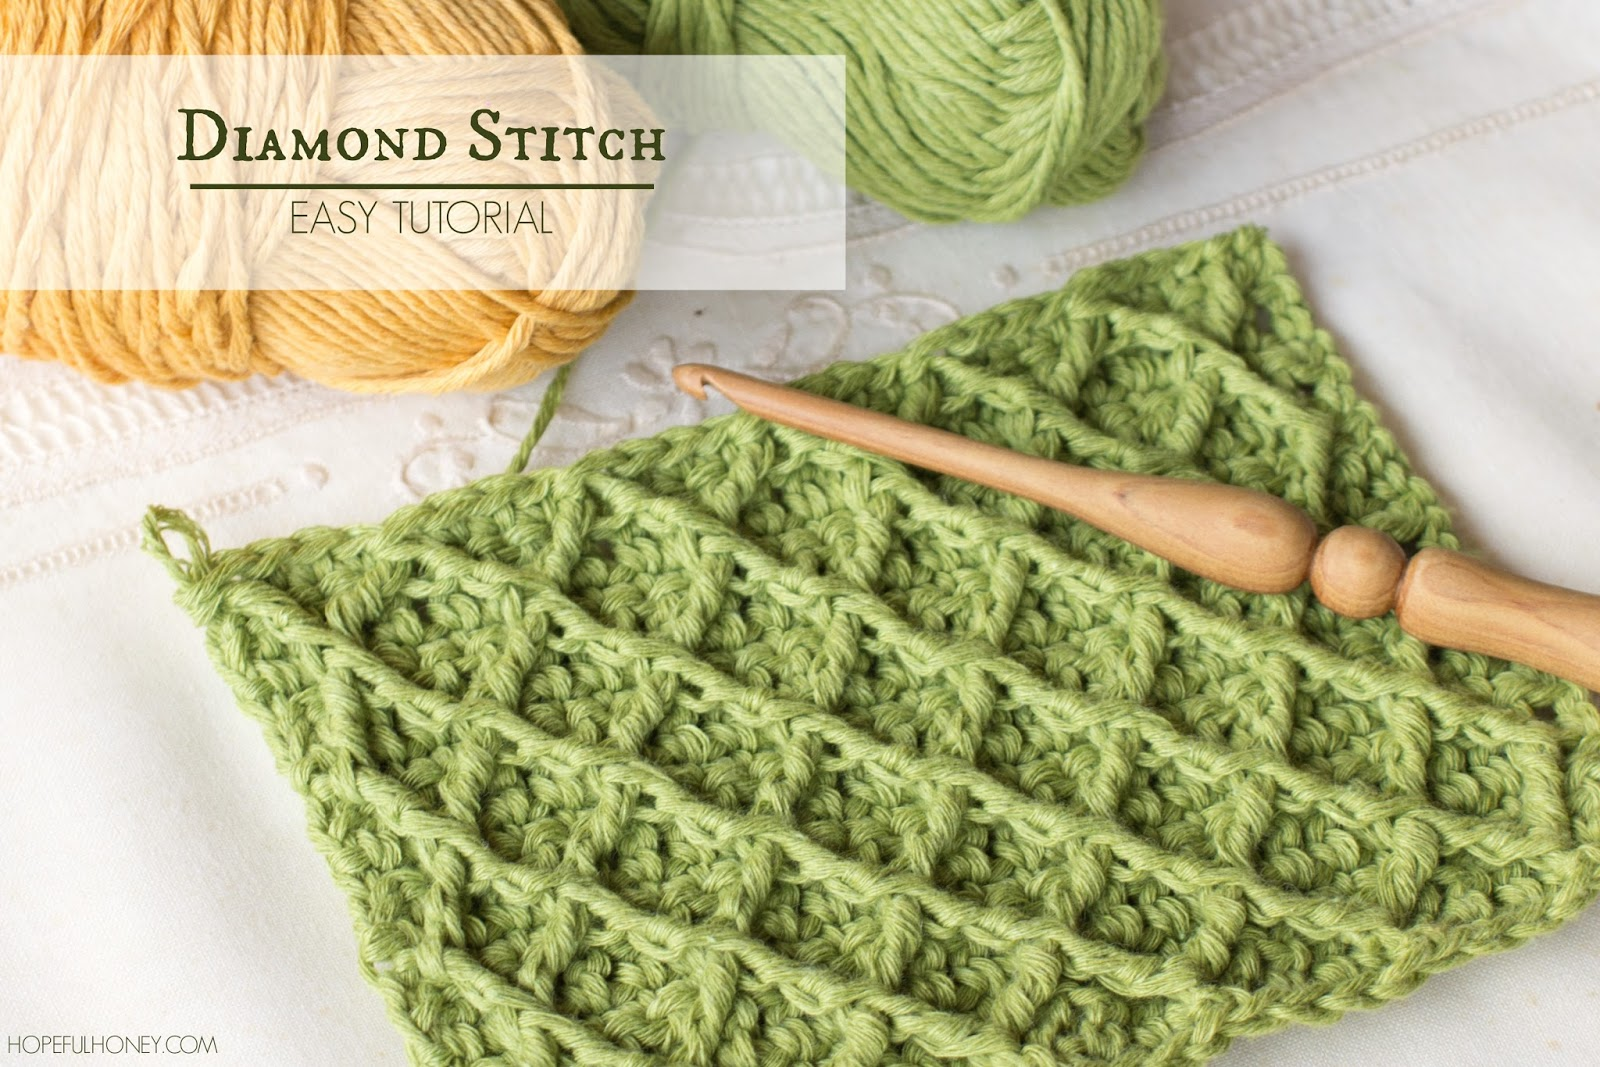 Crochet Stitches With Images : ... , Crochet, Create: How To: Crochet The Diamond Stitch - Easy Tutorial